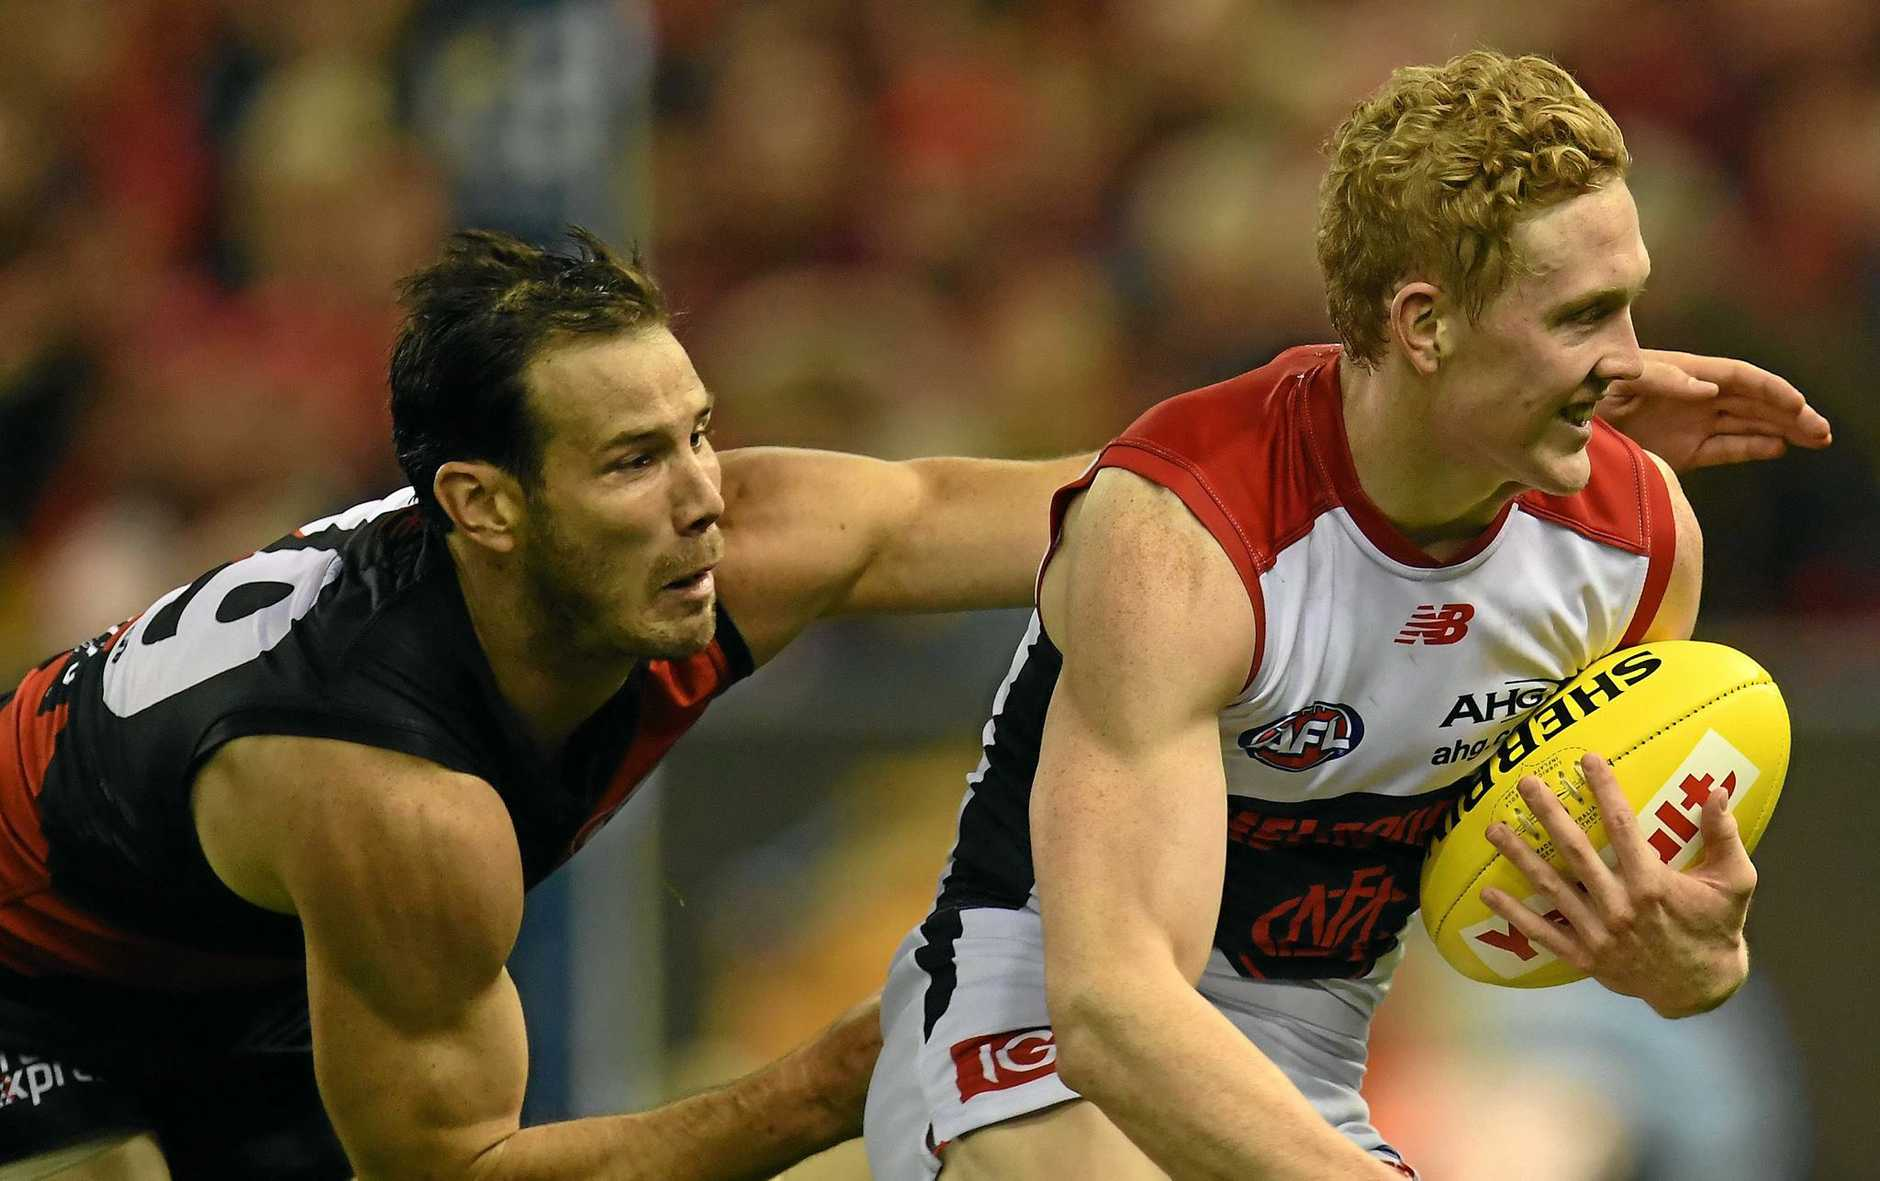 YOUNG STAR: Melbourne Demons Clayton Oliver (right) has earned high praise from his captain who rates him as one the best young talents he has seen in a decade.